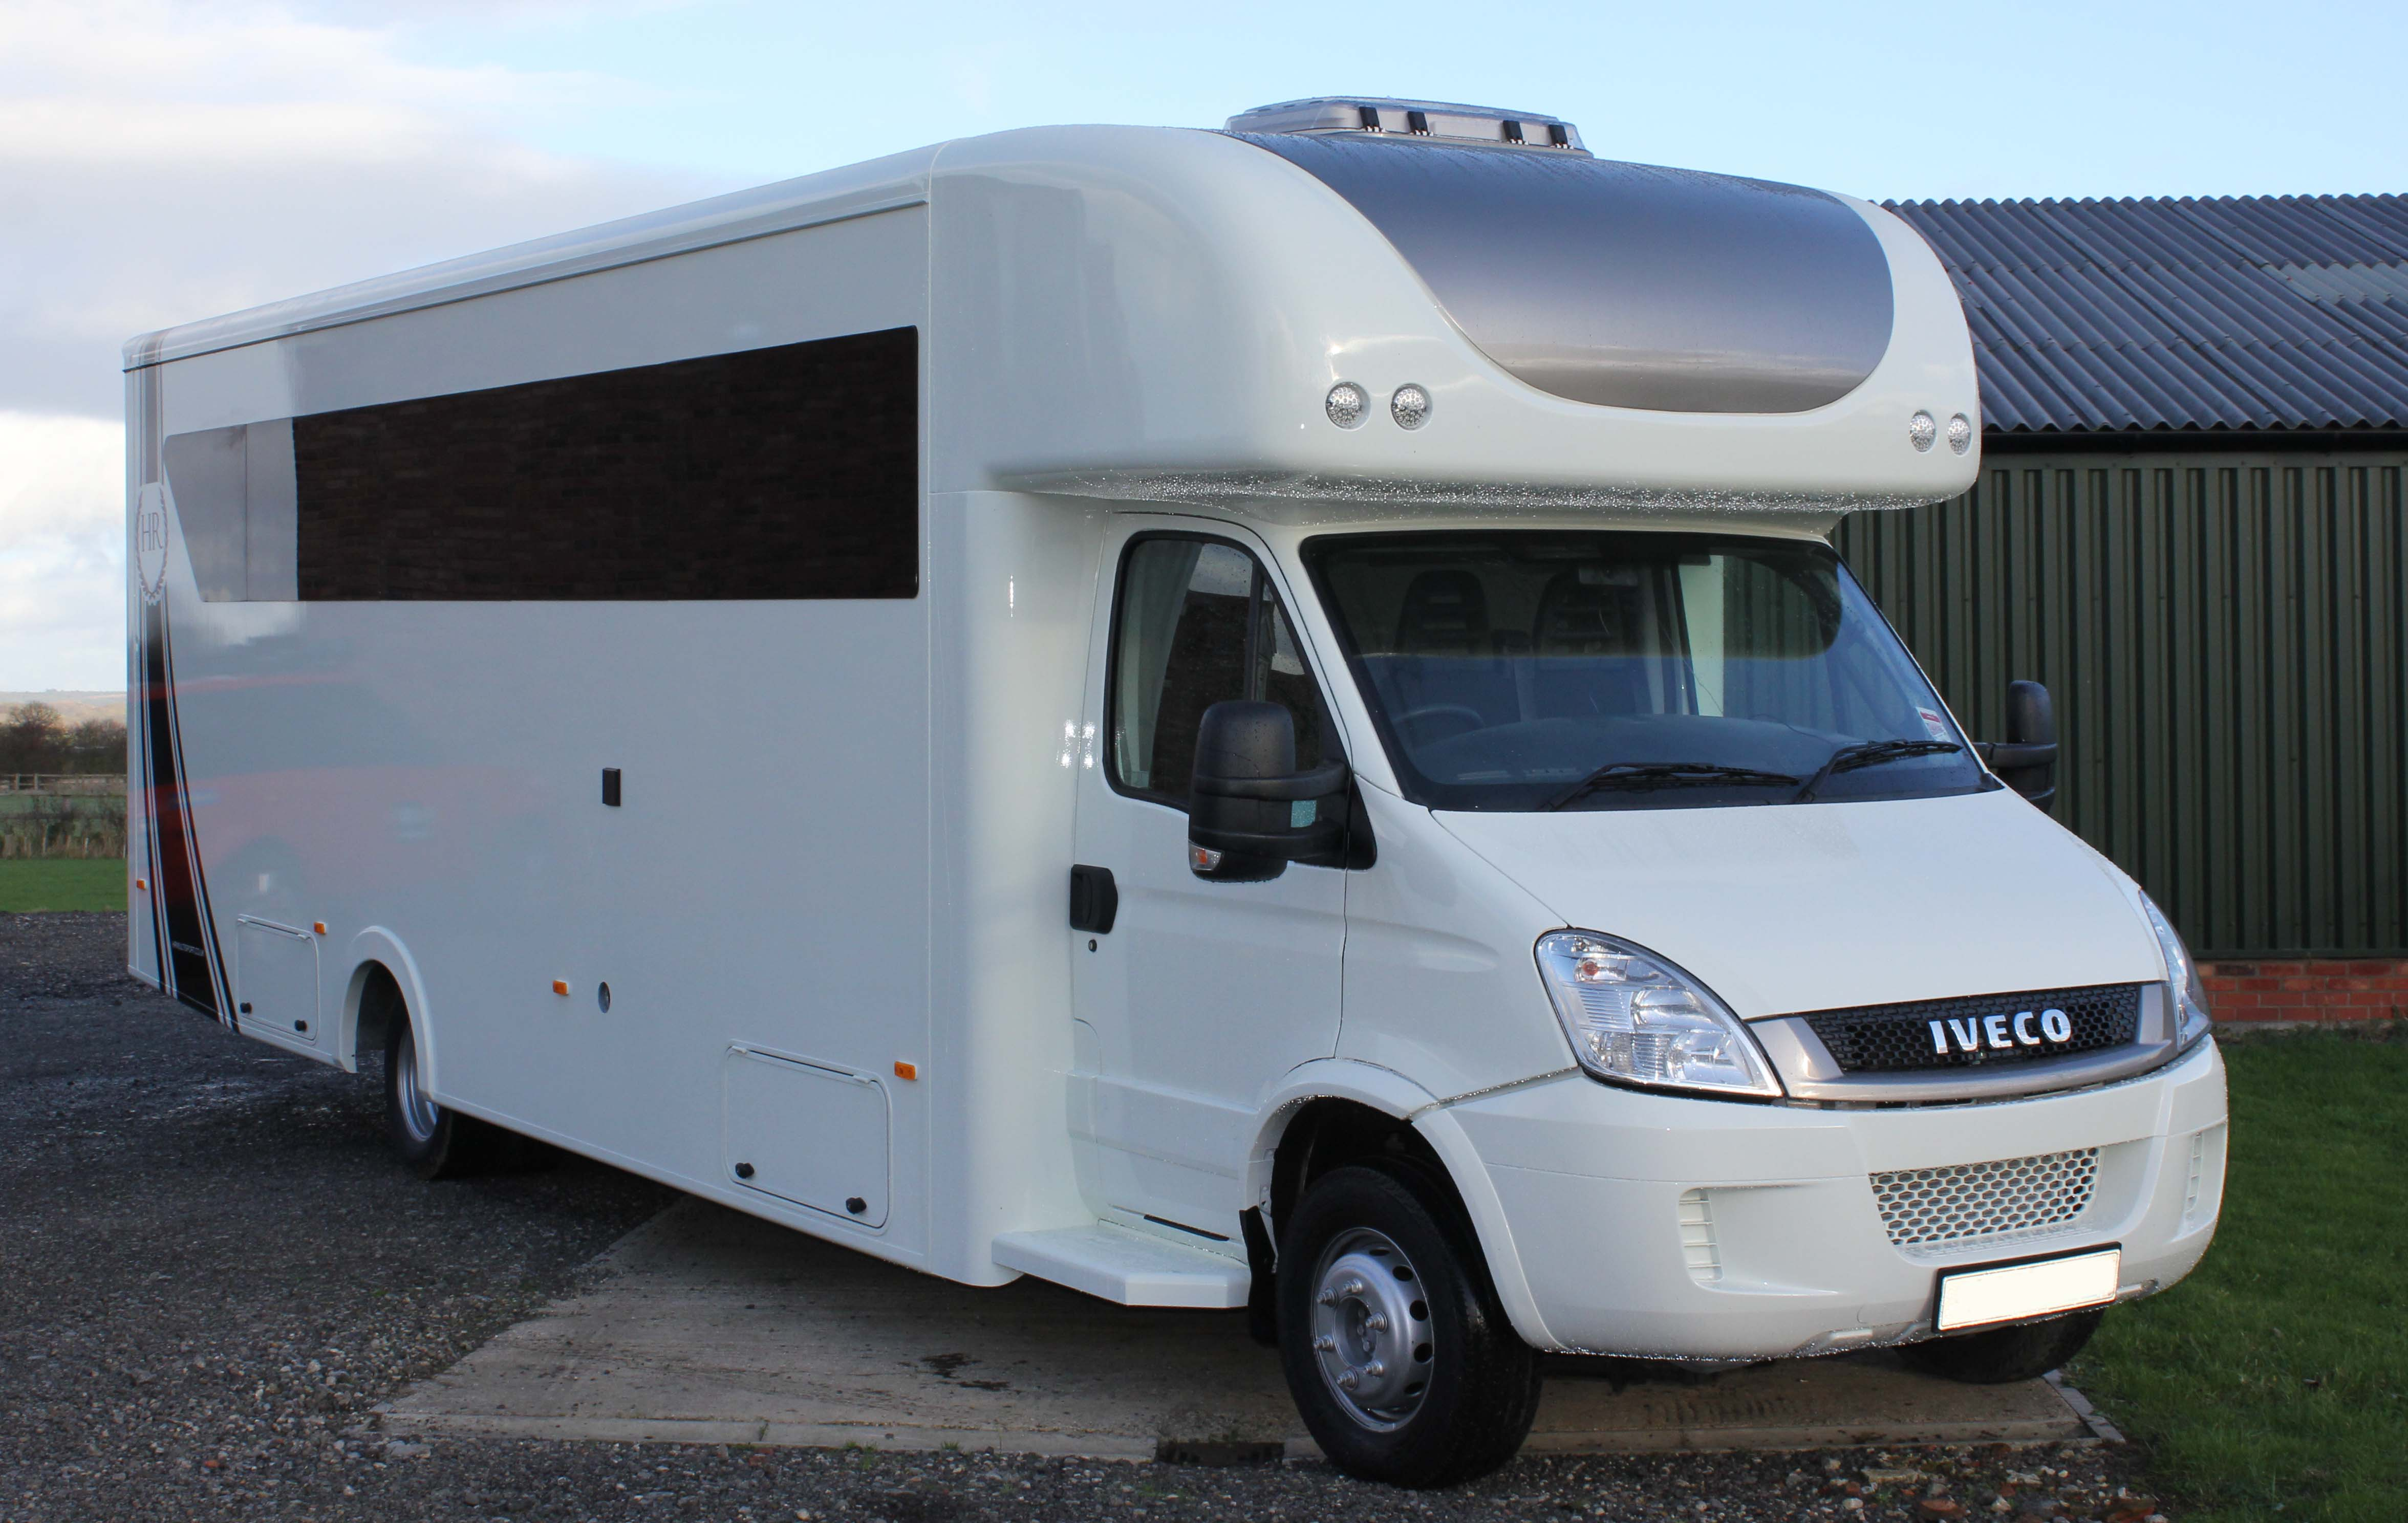 Stunning Motorhome Car Carrier 6 Berth 7 T Iveco Daily | Trailers & Transporters for sale at Raced & Rallied | rally cars for sale, race cars for sale